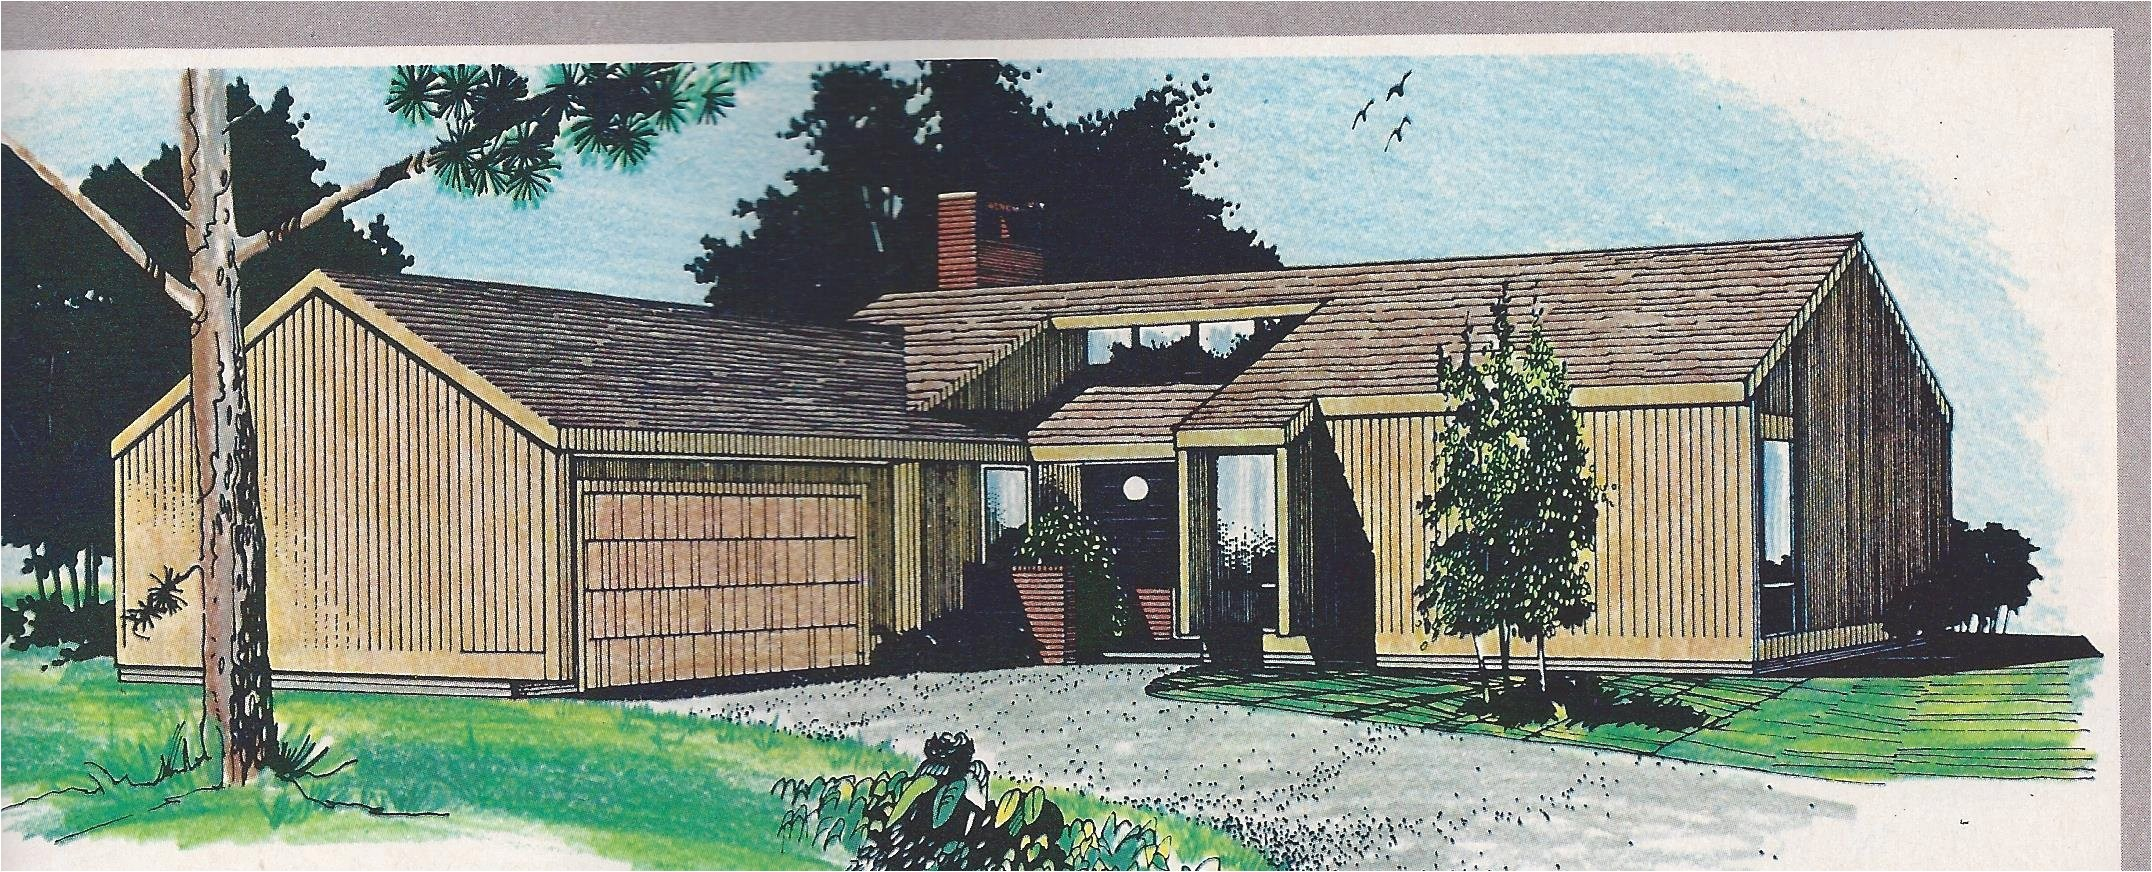 better homes and gardens house plans 1970s delightful better homes and gardens house plans 4